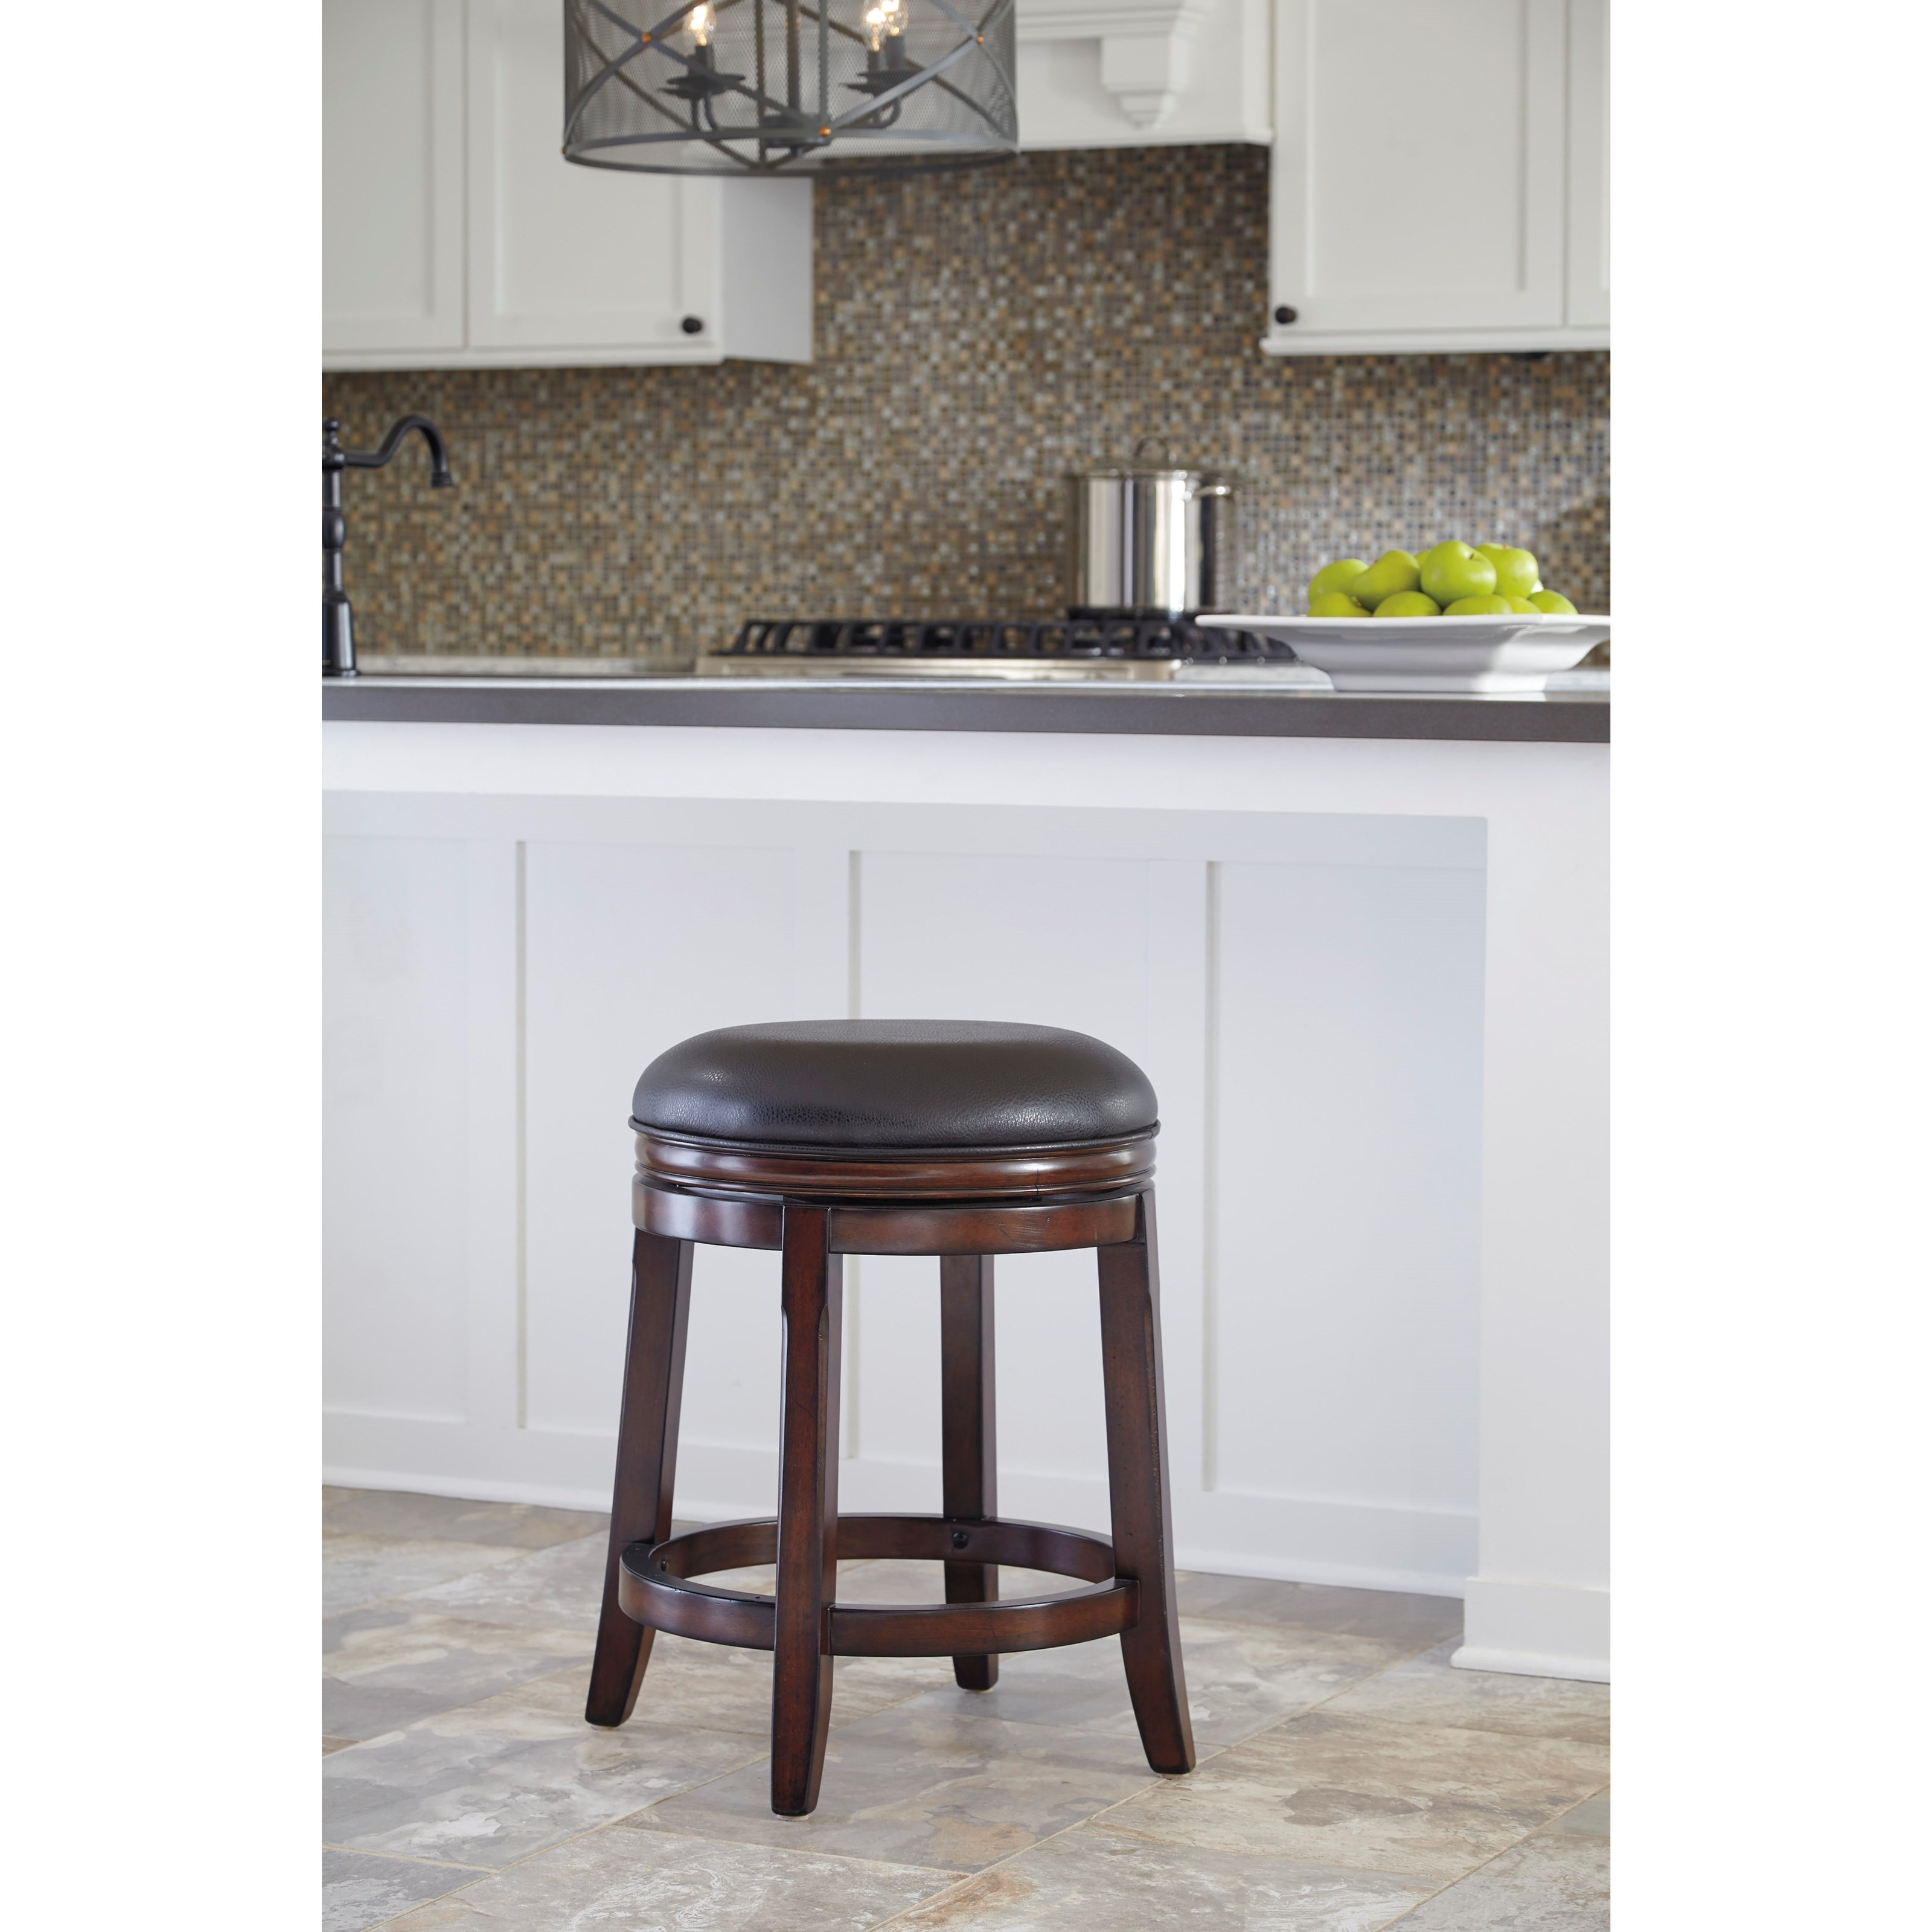 Ashley Furniture Porter House D697 324 Counter Height